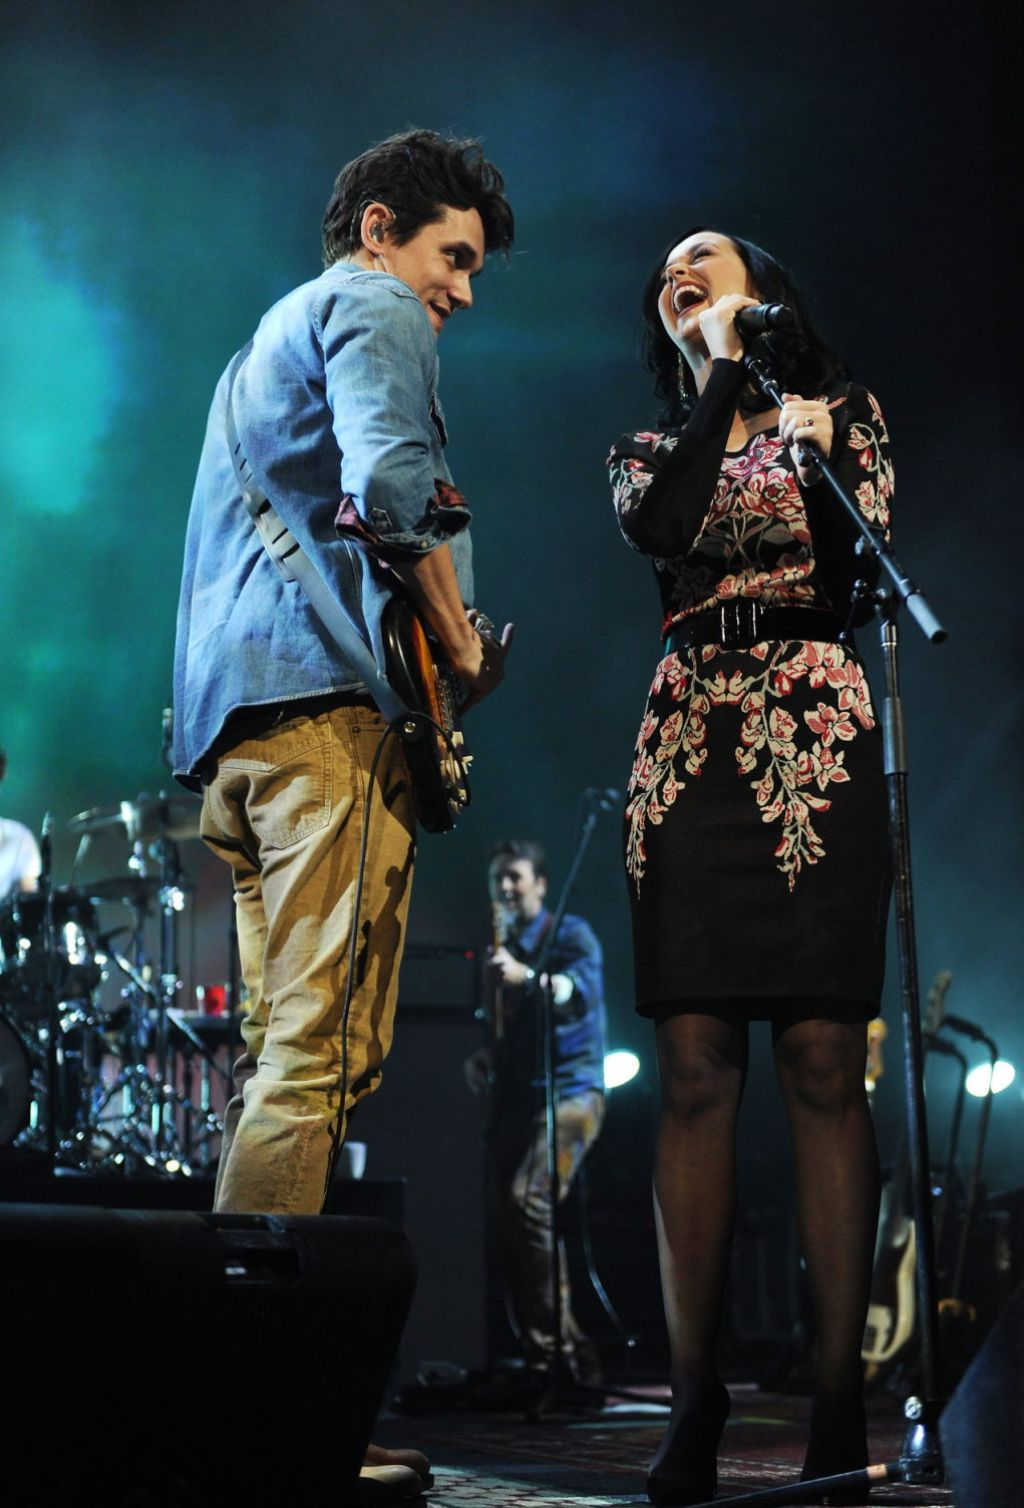 katy perry performing at the john mayer concert in new york city december 2013. Black Bedroom Furniture Sets. Home Design Ideas